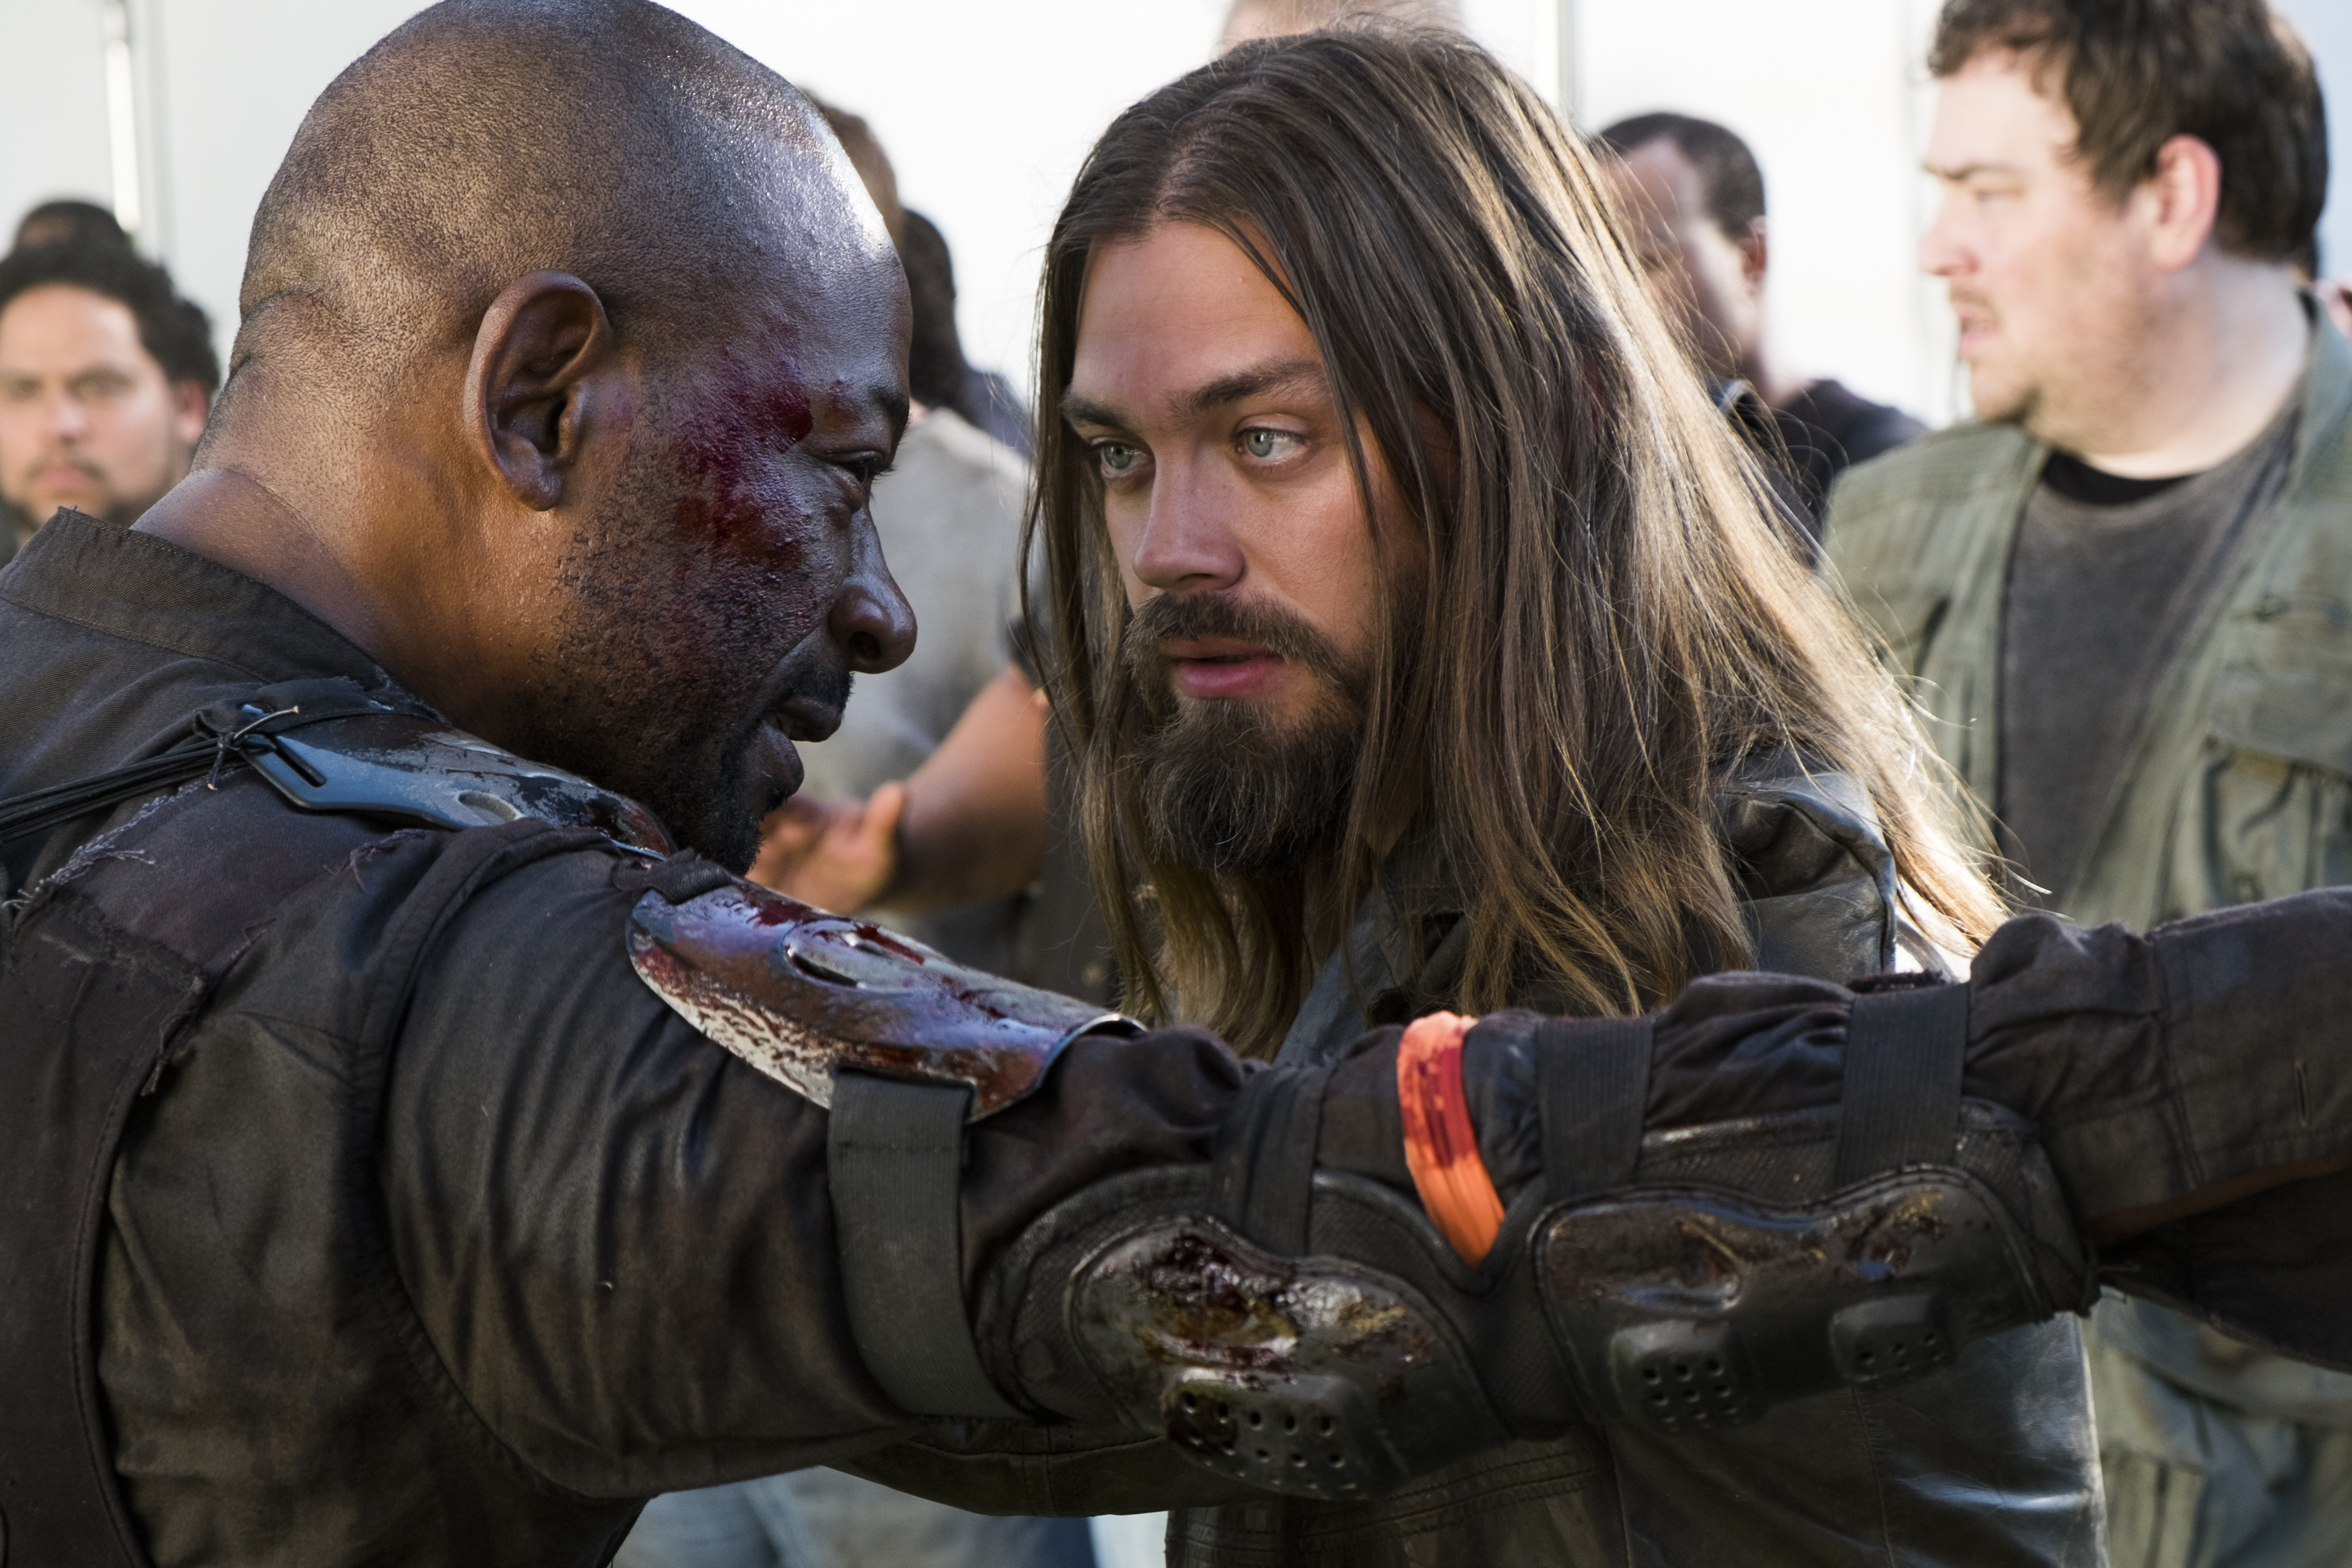 Paul 'Jesus' Rovia (Tom Payne), Morgan Jones (Lennie James) - The Walking Dead Saison 8 Épisode 2 - Photo: Gene Page/AMC